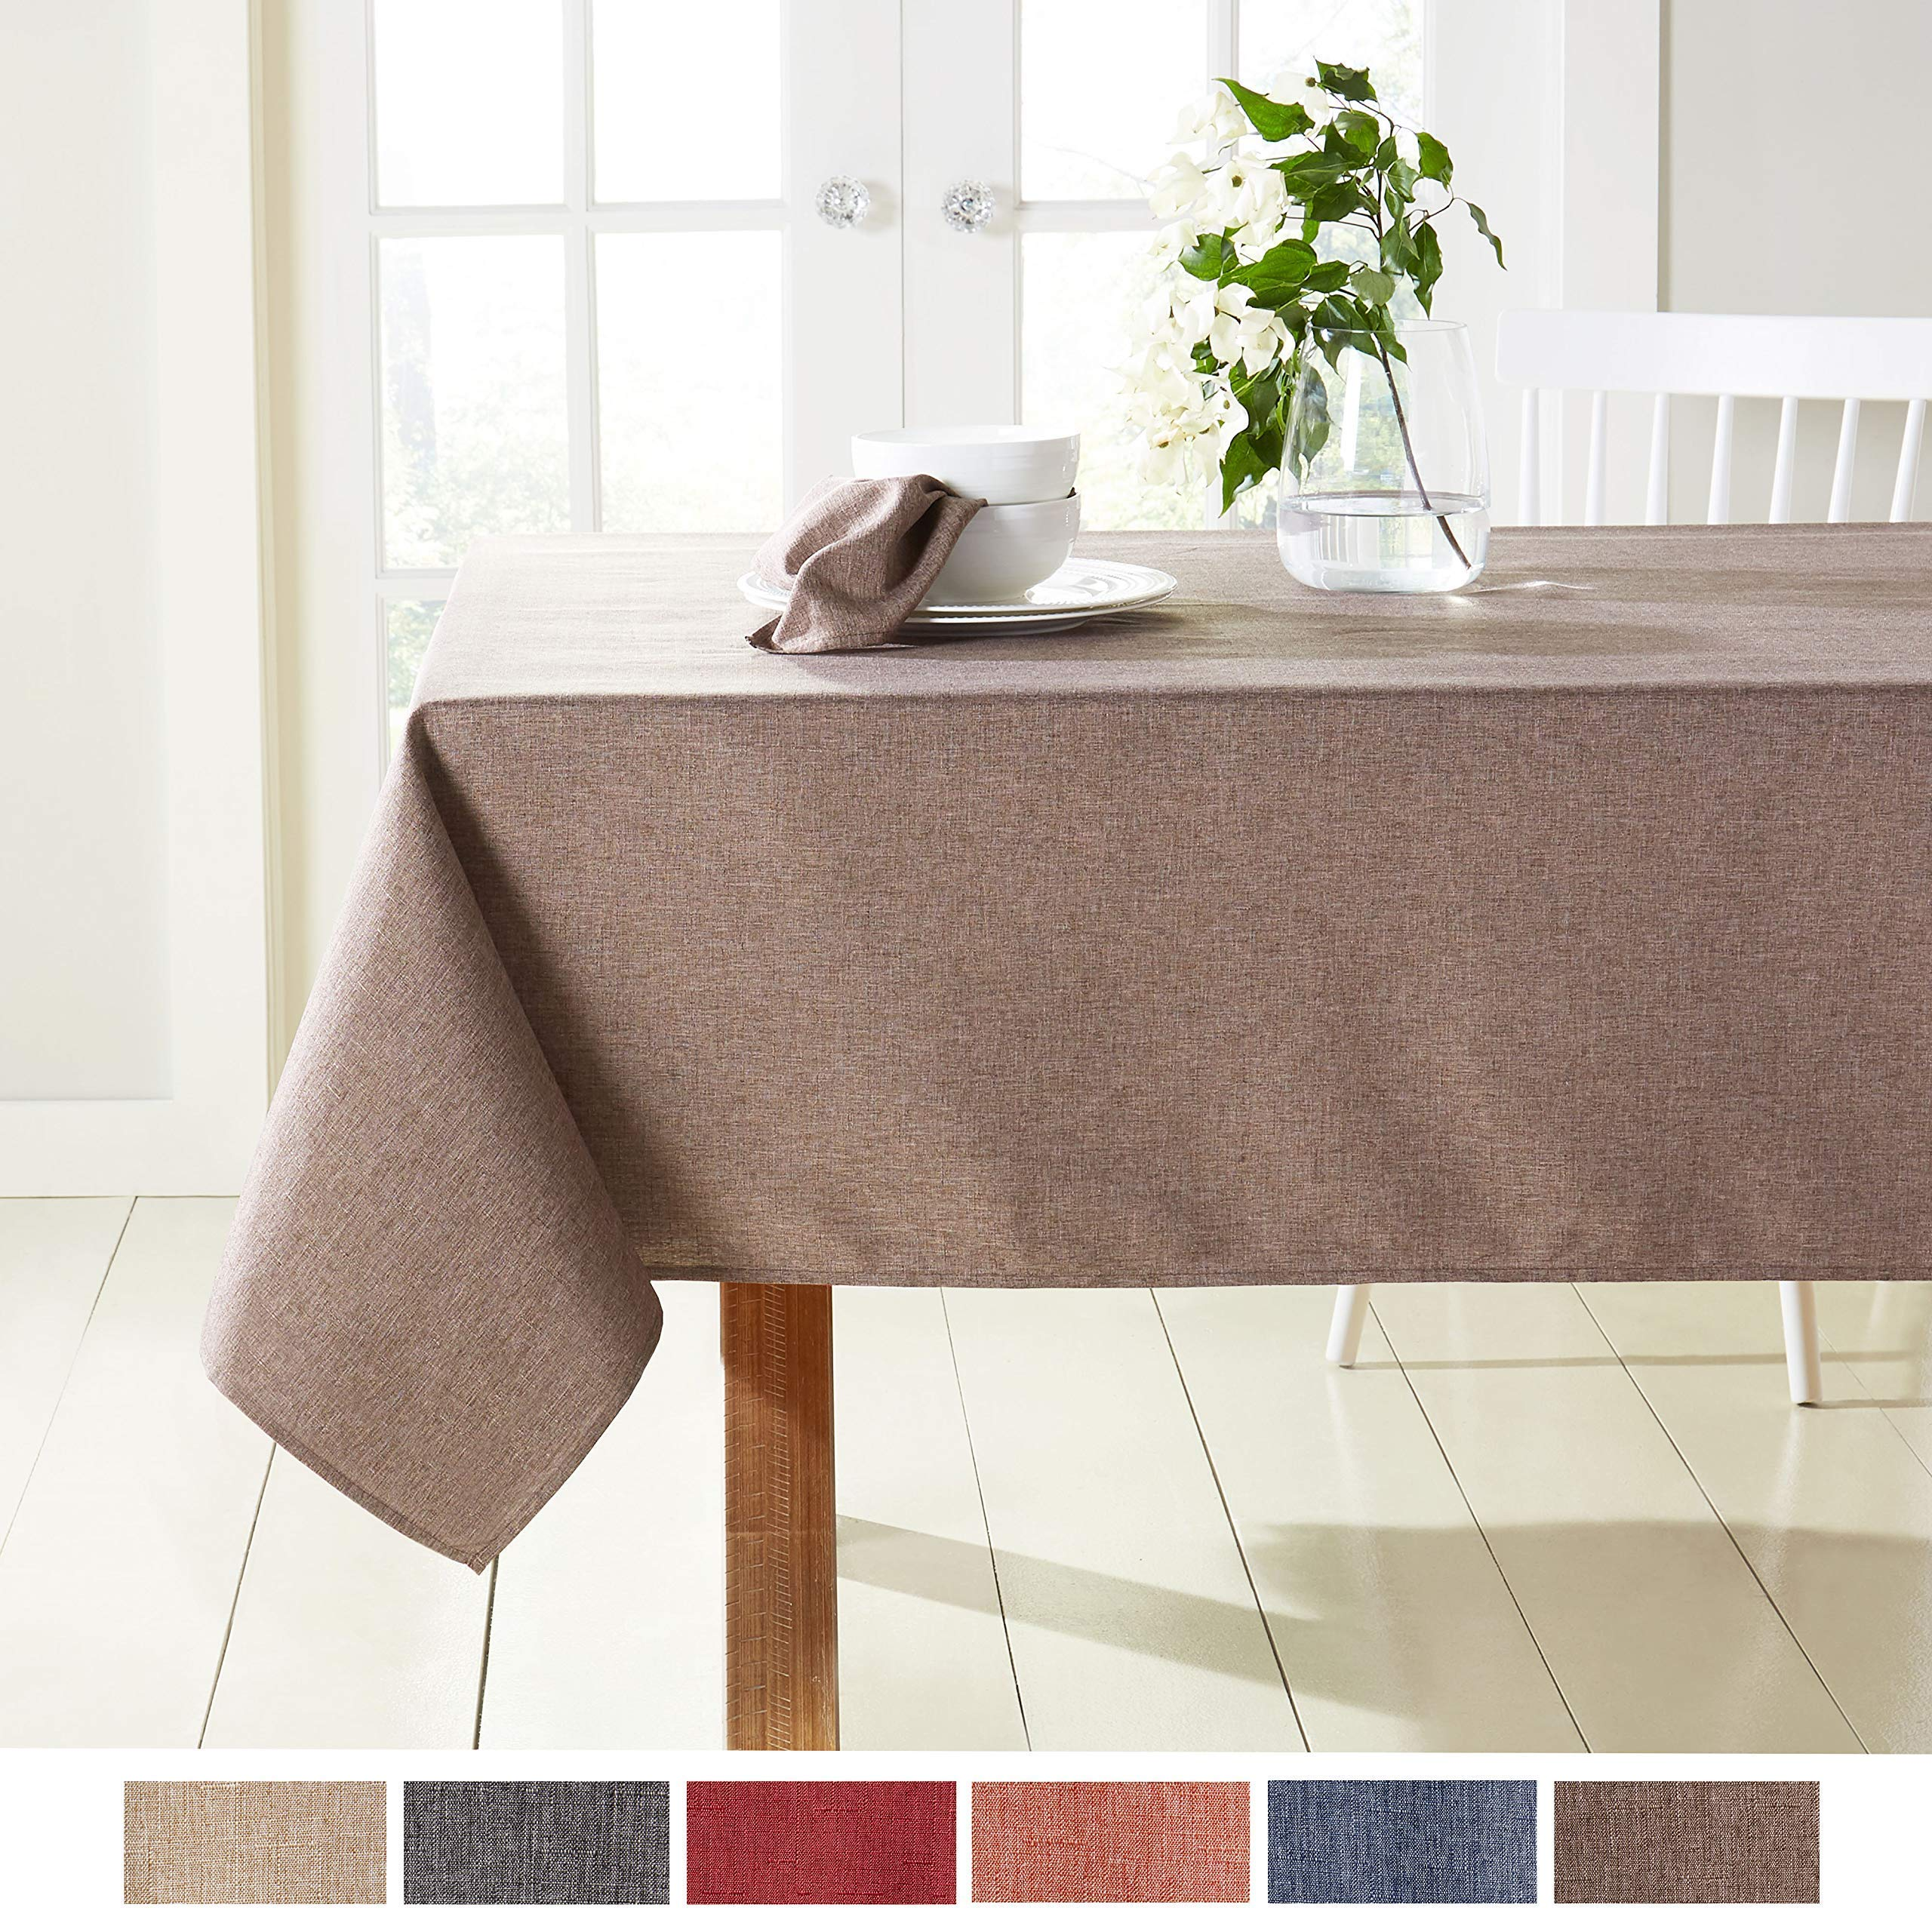 """Town & Country Living Somers Modern Farmhouse Tablecloth, Picnic/Indoor Outdoor/Stain Resistant/Machine Washable Polyester, 60""""x120"""" Rectangle Brown"""